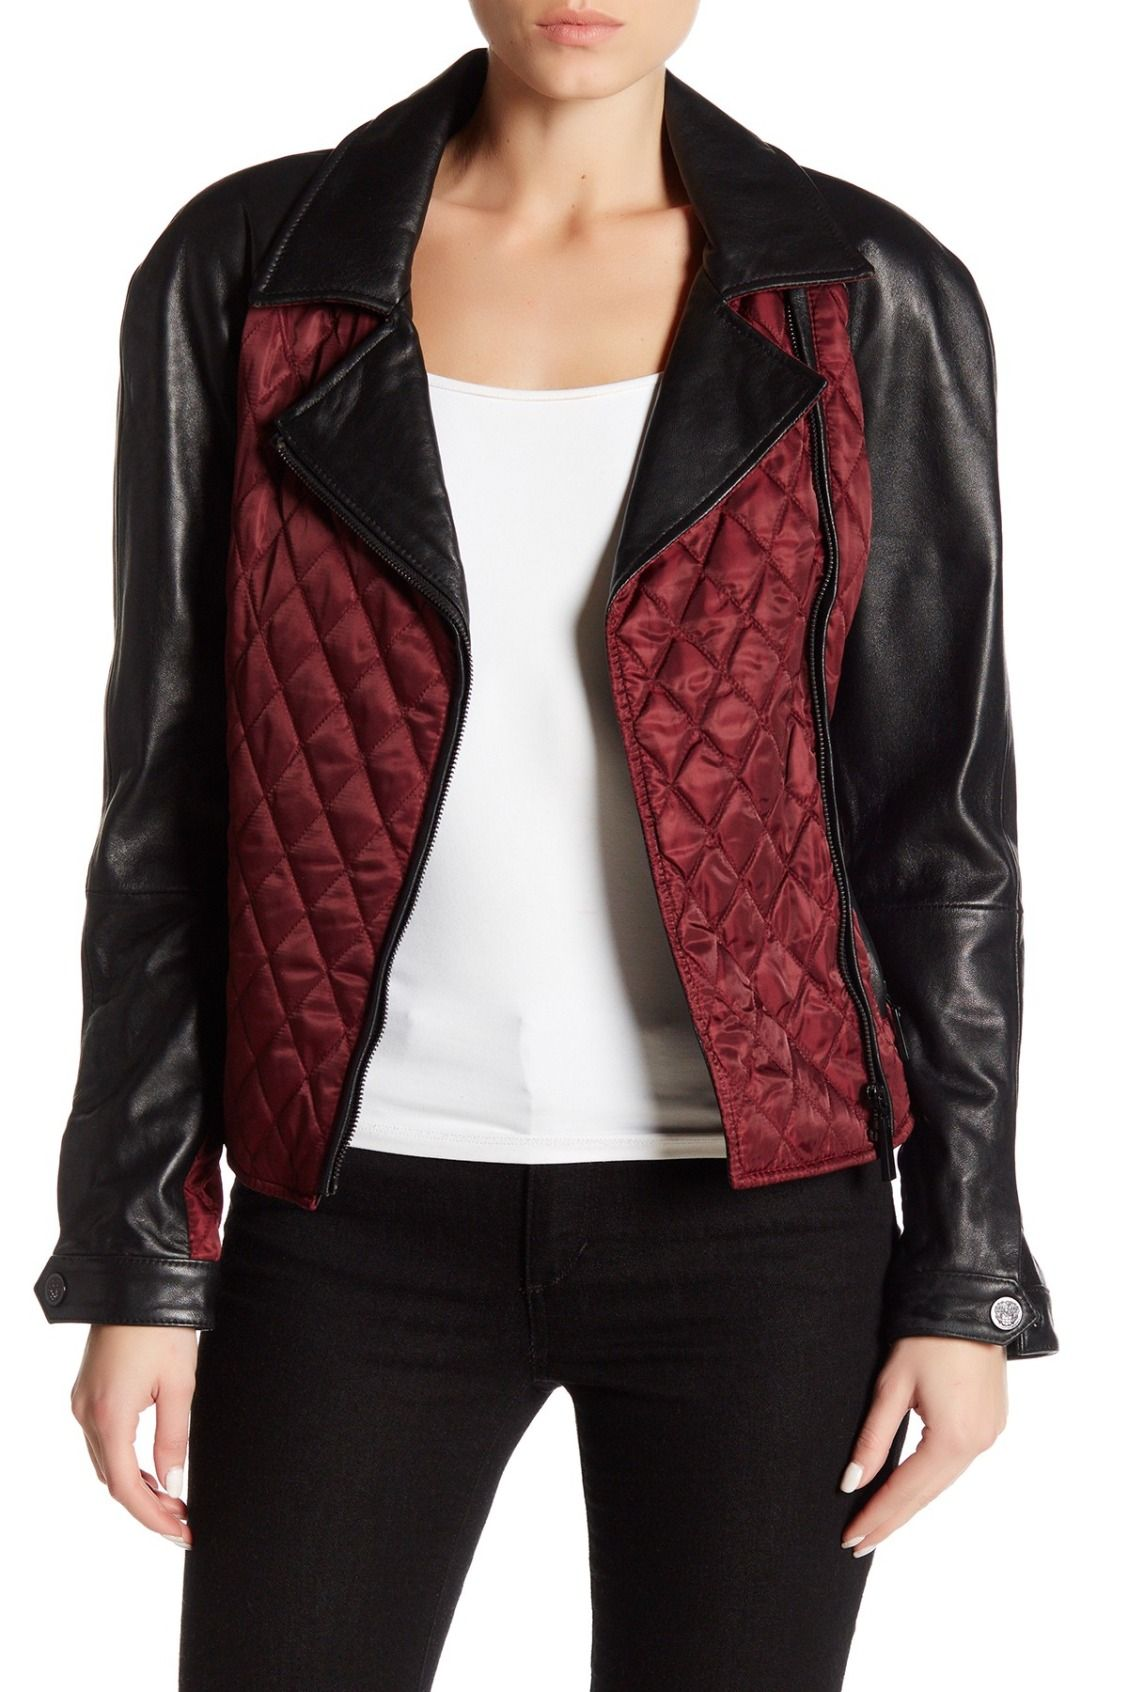 Vince Camuto Mixed Media Quilted Genuine Leather Sleeve Jacket Nordstrom Rack Leather Sleeve Jacket Leather Sleeve Jackets [ 1692 x 1128 Pixel ]